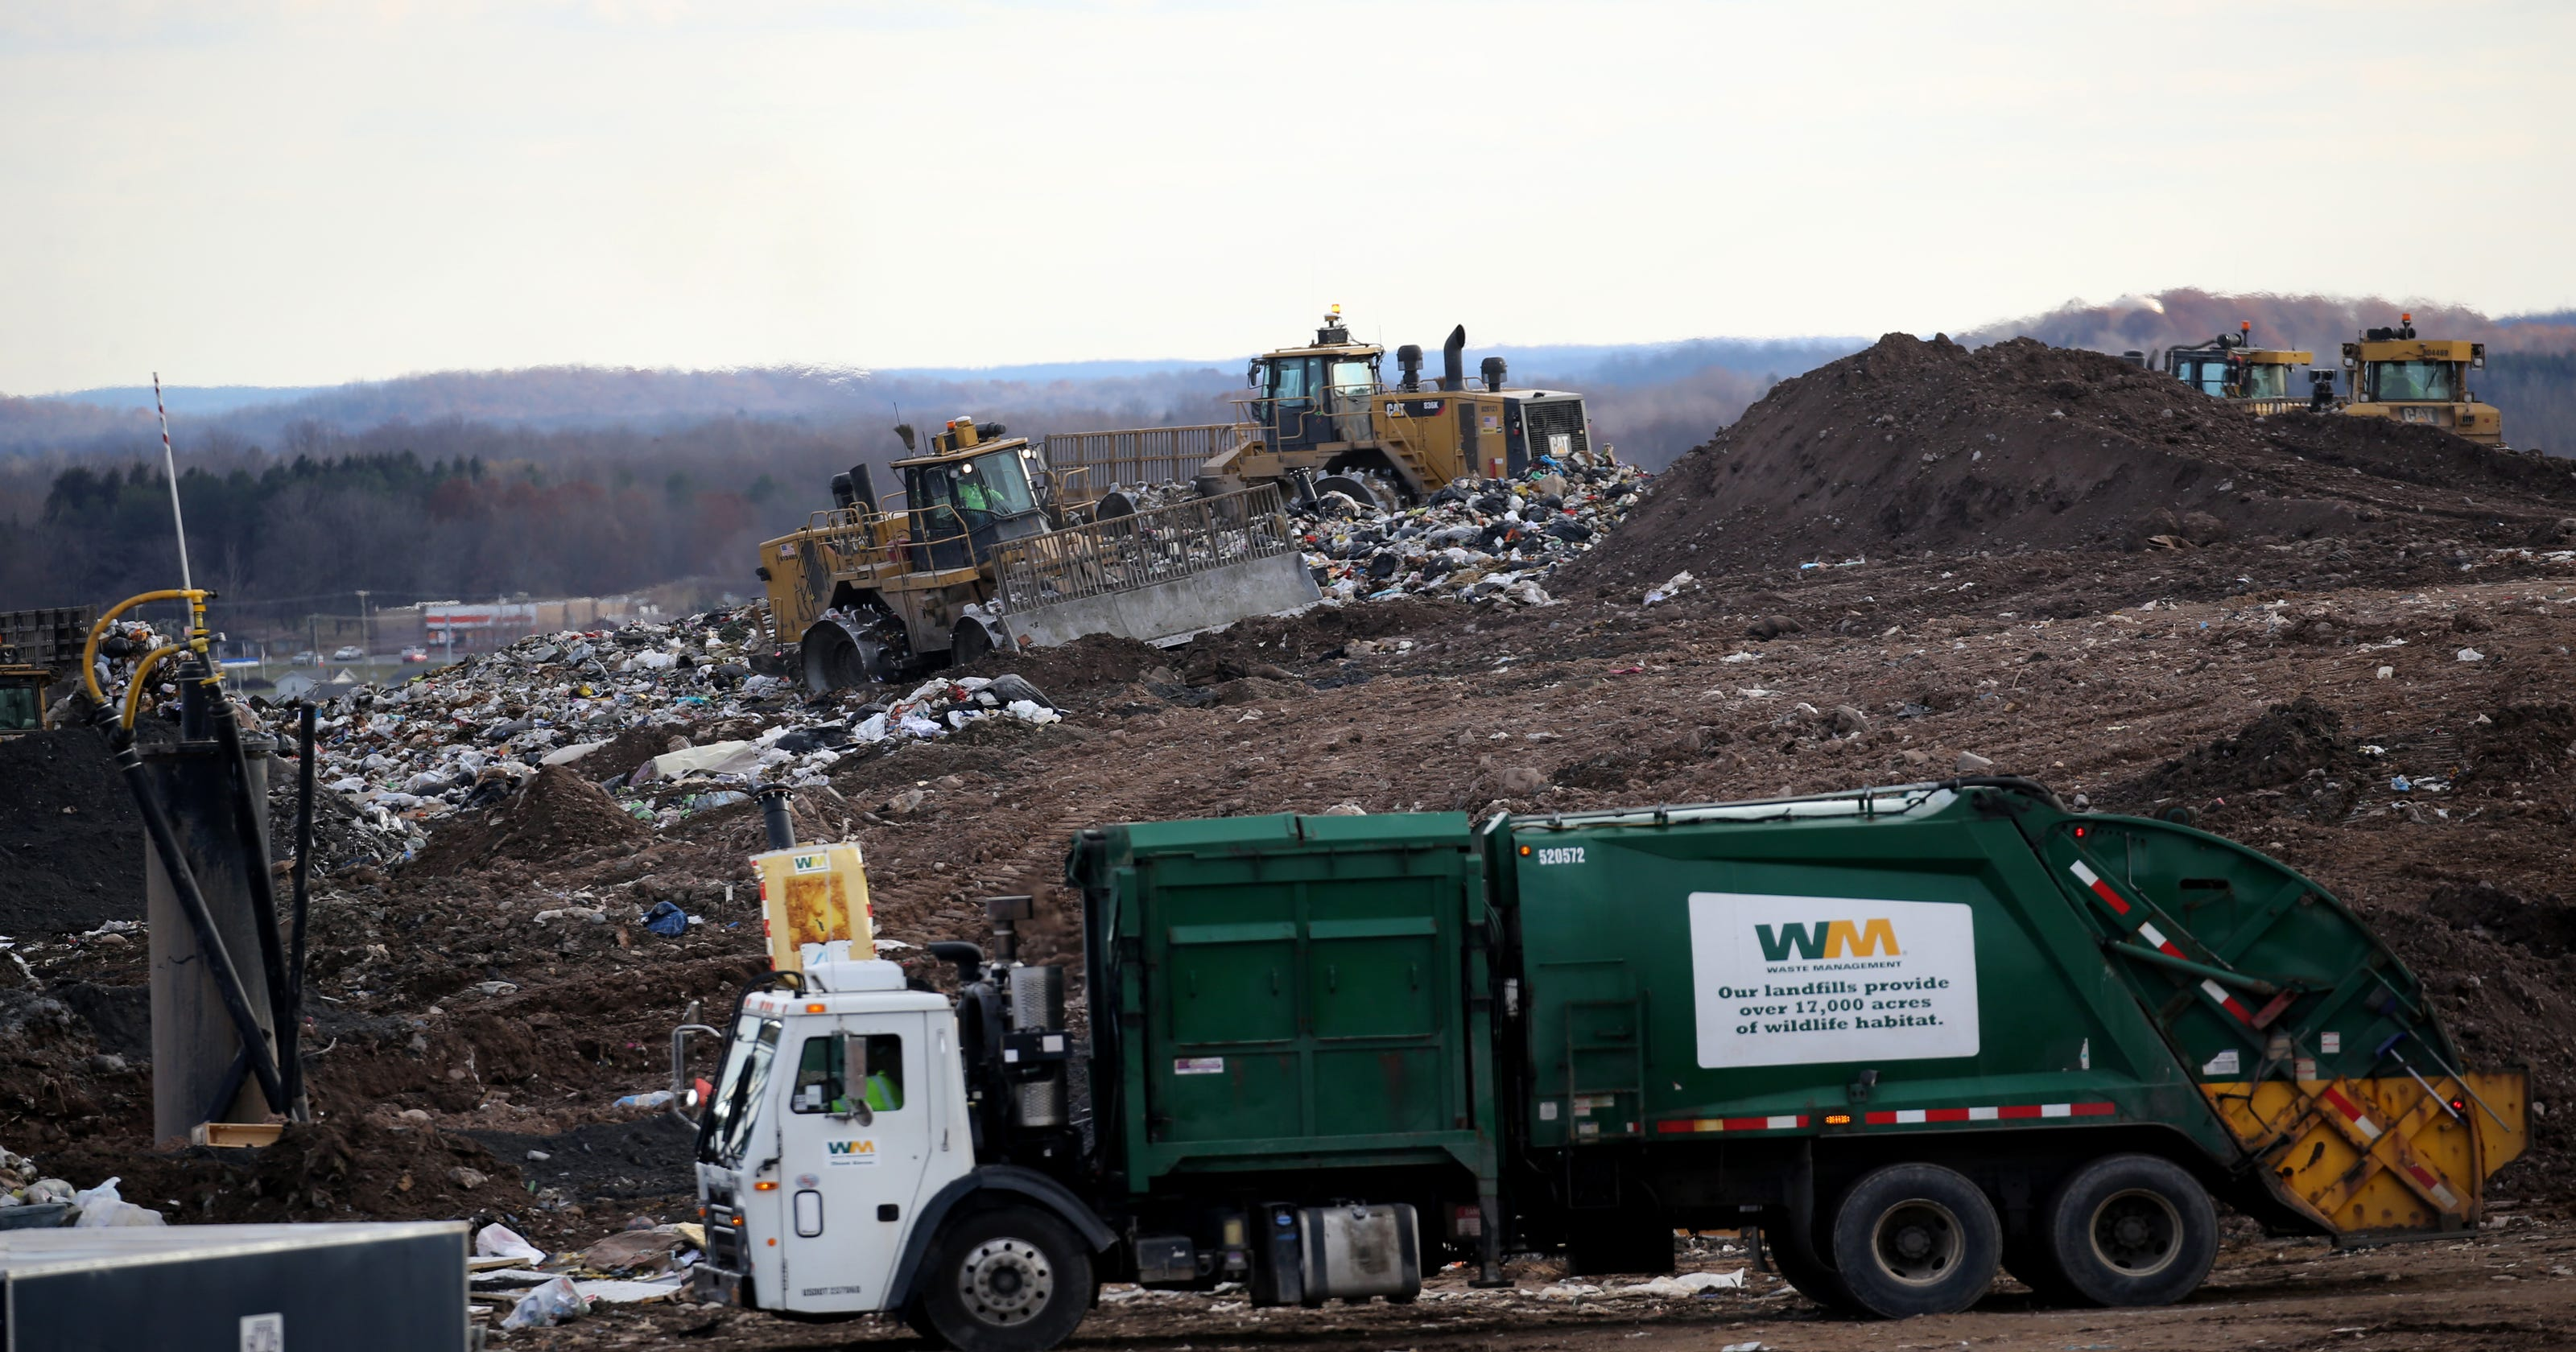 Fairport & Macedon residents suing Waste Management over landfill odors